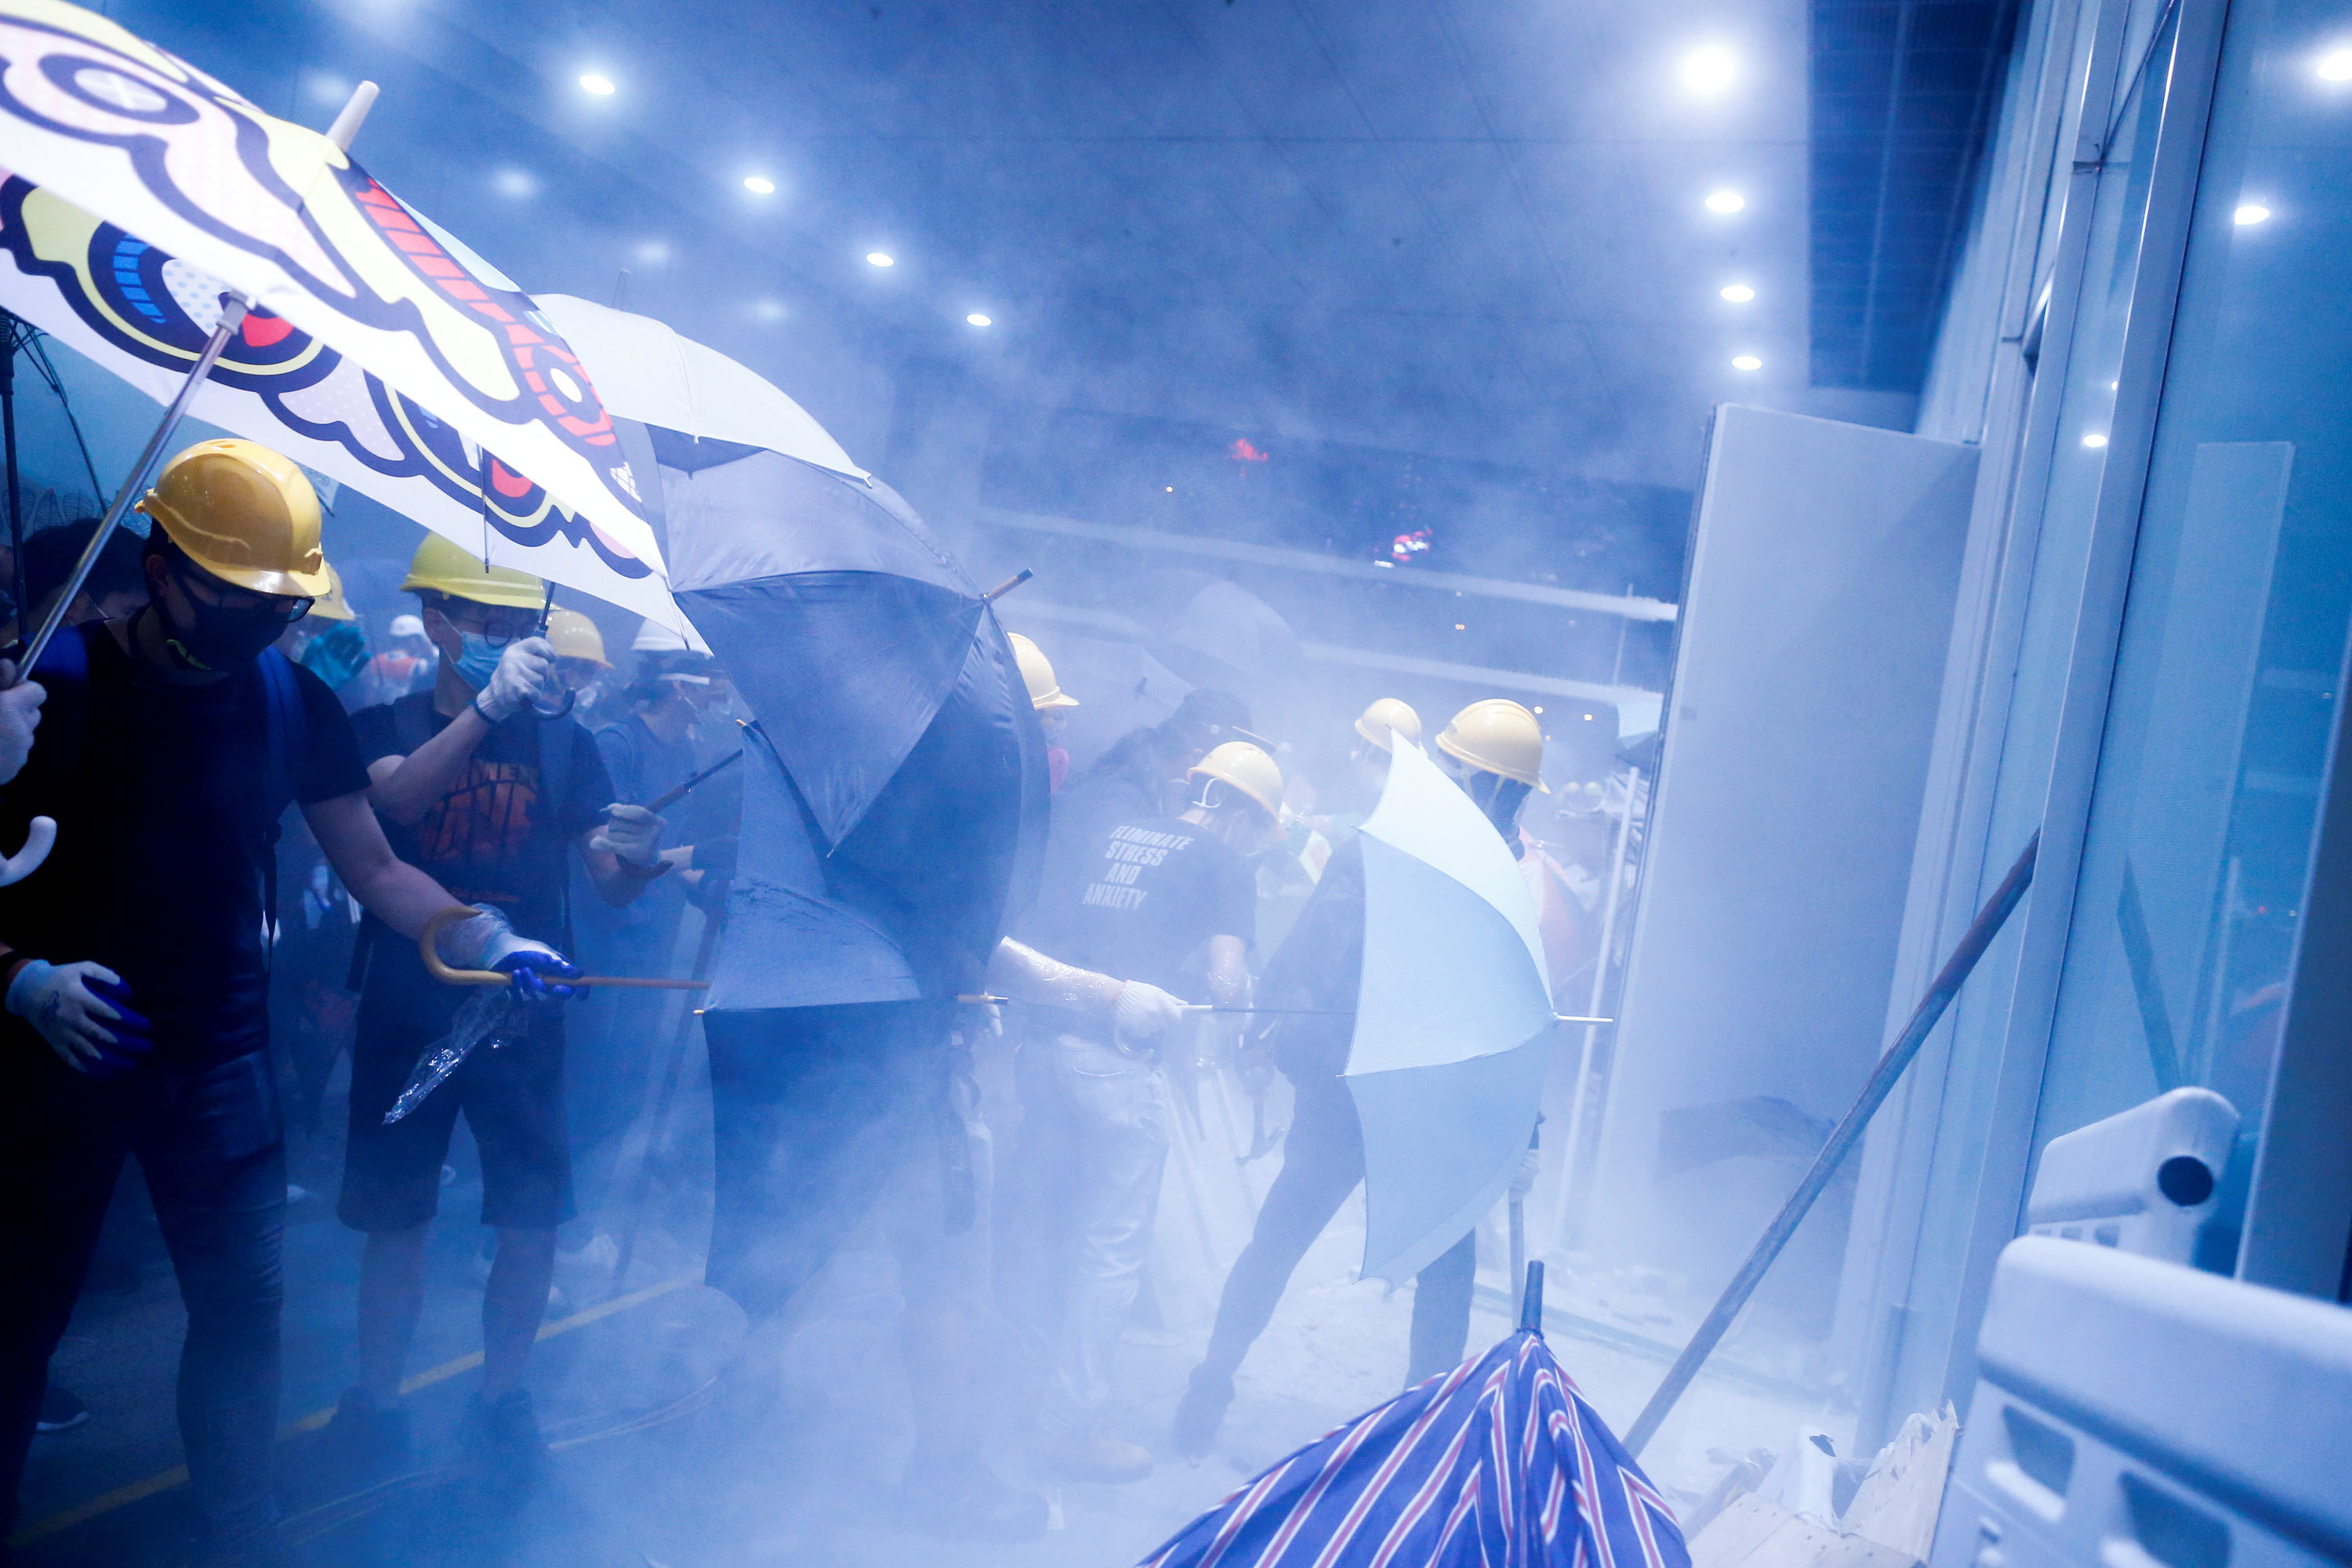 Protesters storm Hong Kong's Legislative Council building on July 1. (Thomas Peter/Reuters)